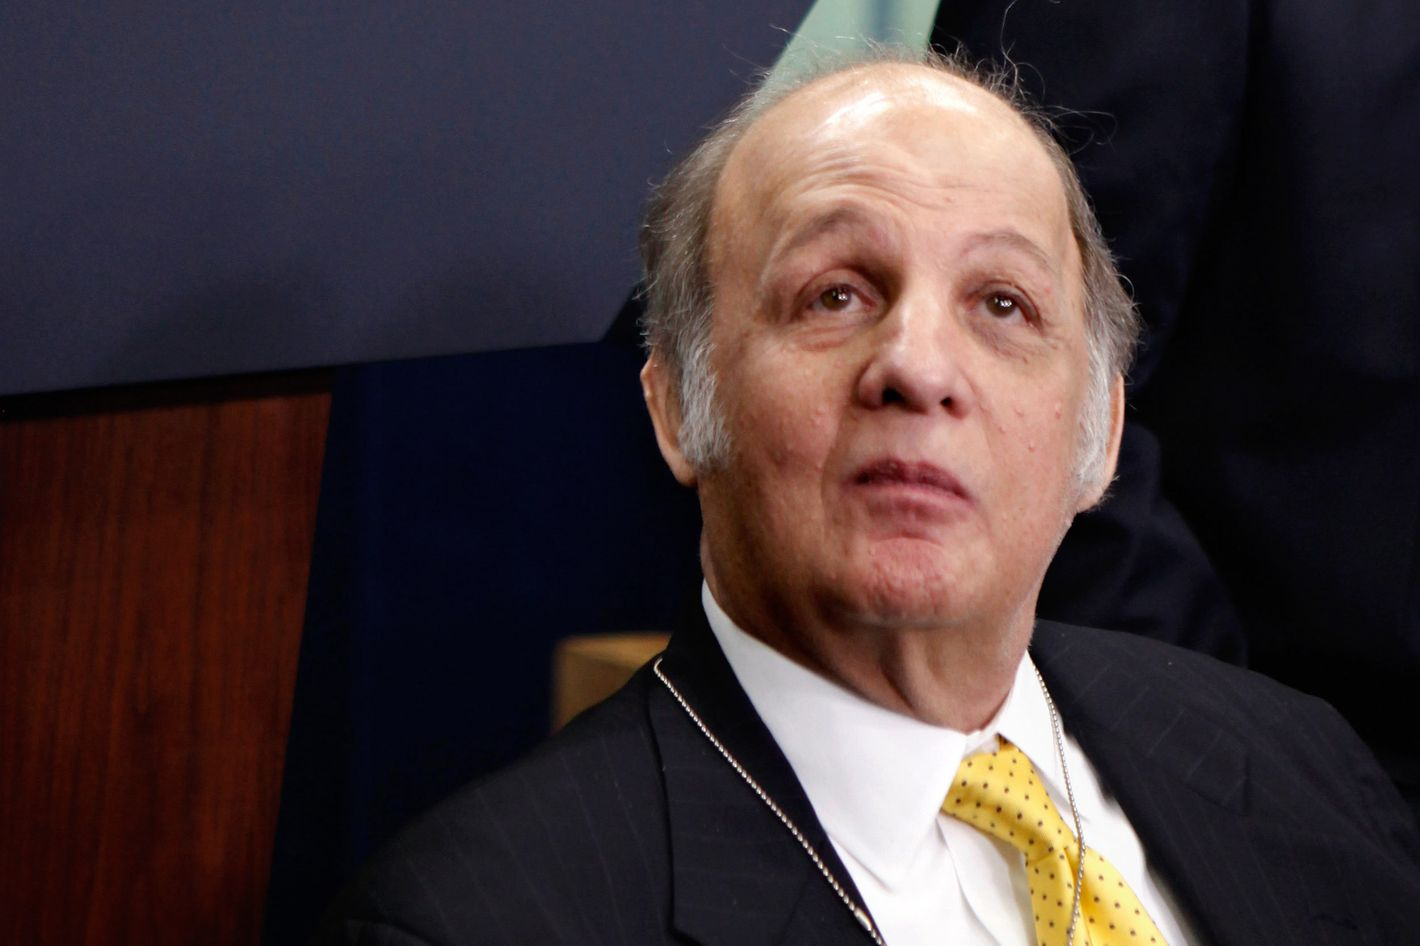 Former White House Press Secretary James Brady visits the press briefing room that bears his name in the West Wing of the White House March 30, 2011 in Washington, DC. Brady was visiting the White House on the 30th anniversary of the day he was shot in the head by John Hinckley, Jr., during his attempted assassination former President Ronald Reagan March 30, 1981.